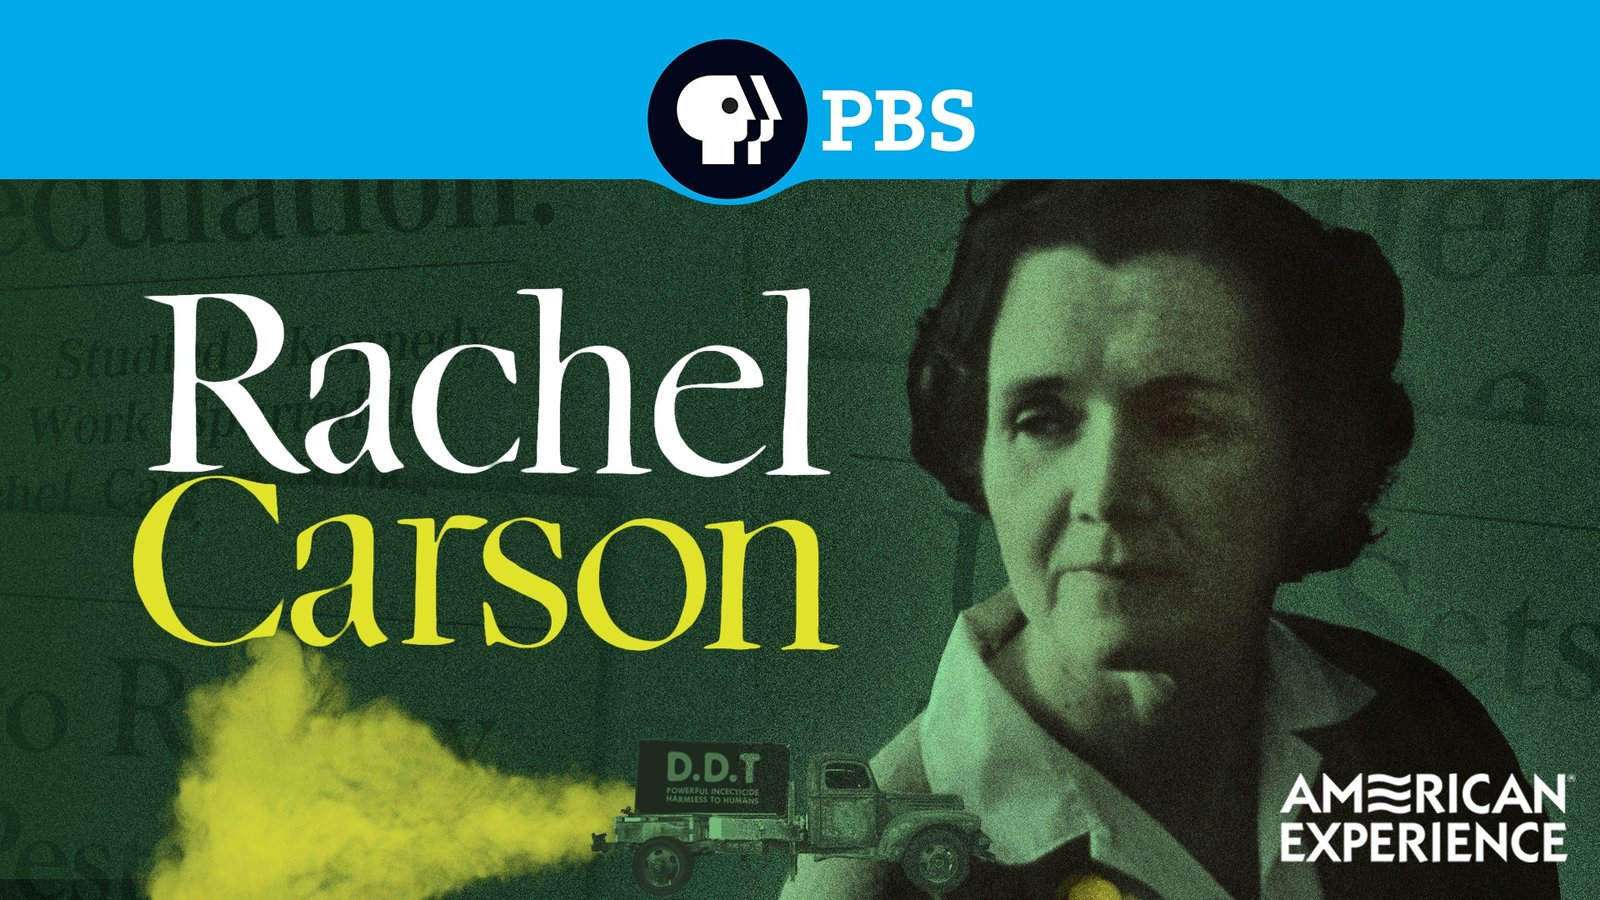 Rachel Carson - The Woman Who Launched the Modern Environmental Movement